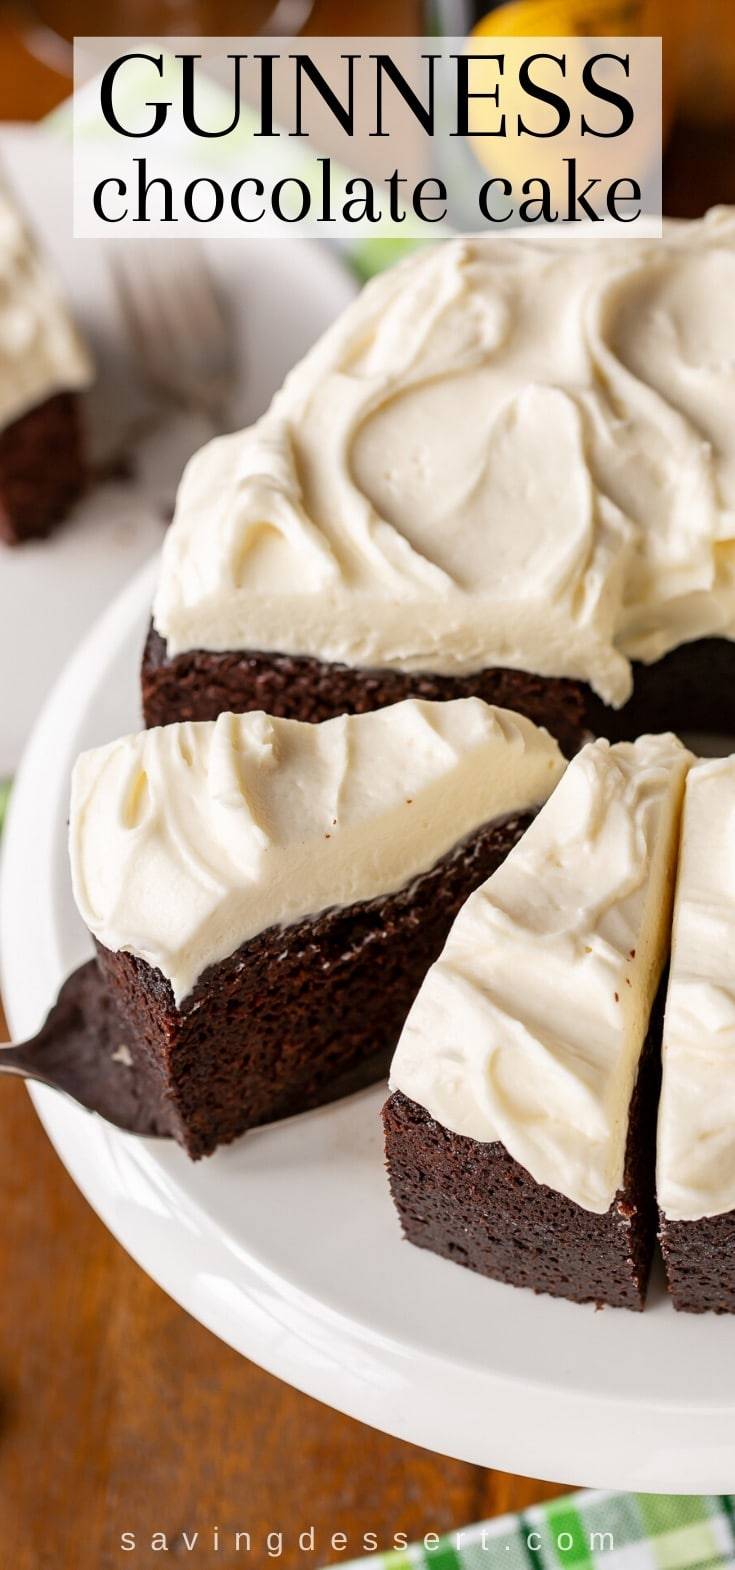 A sliced Guinness Chocolate Cake on a platter